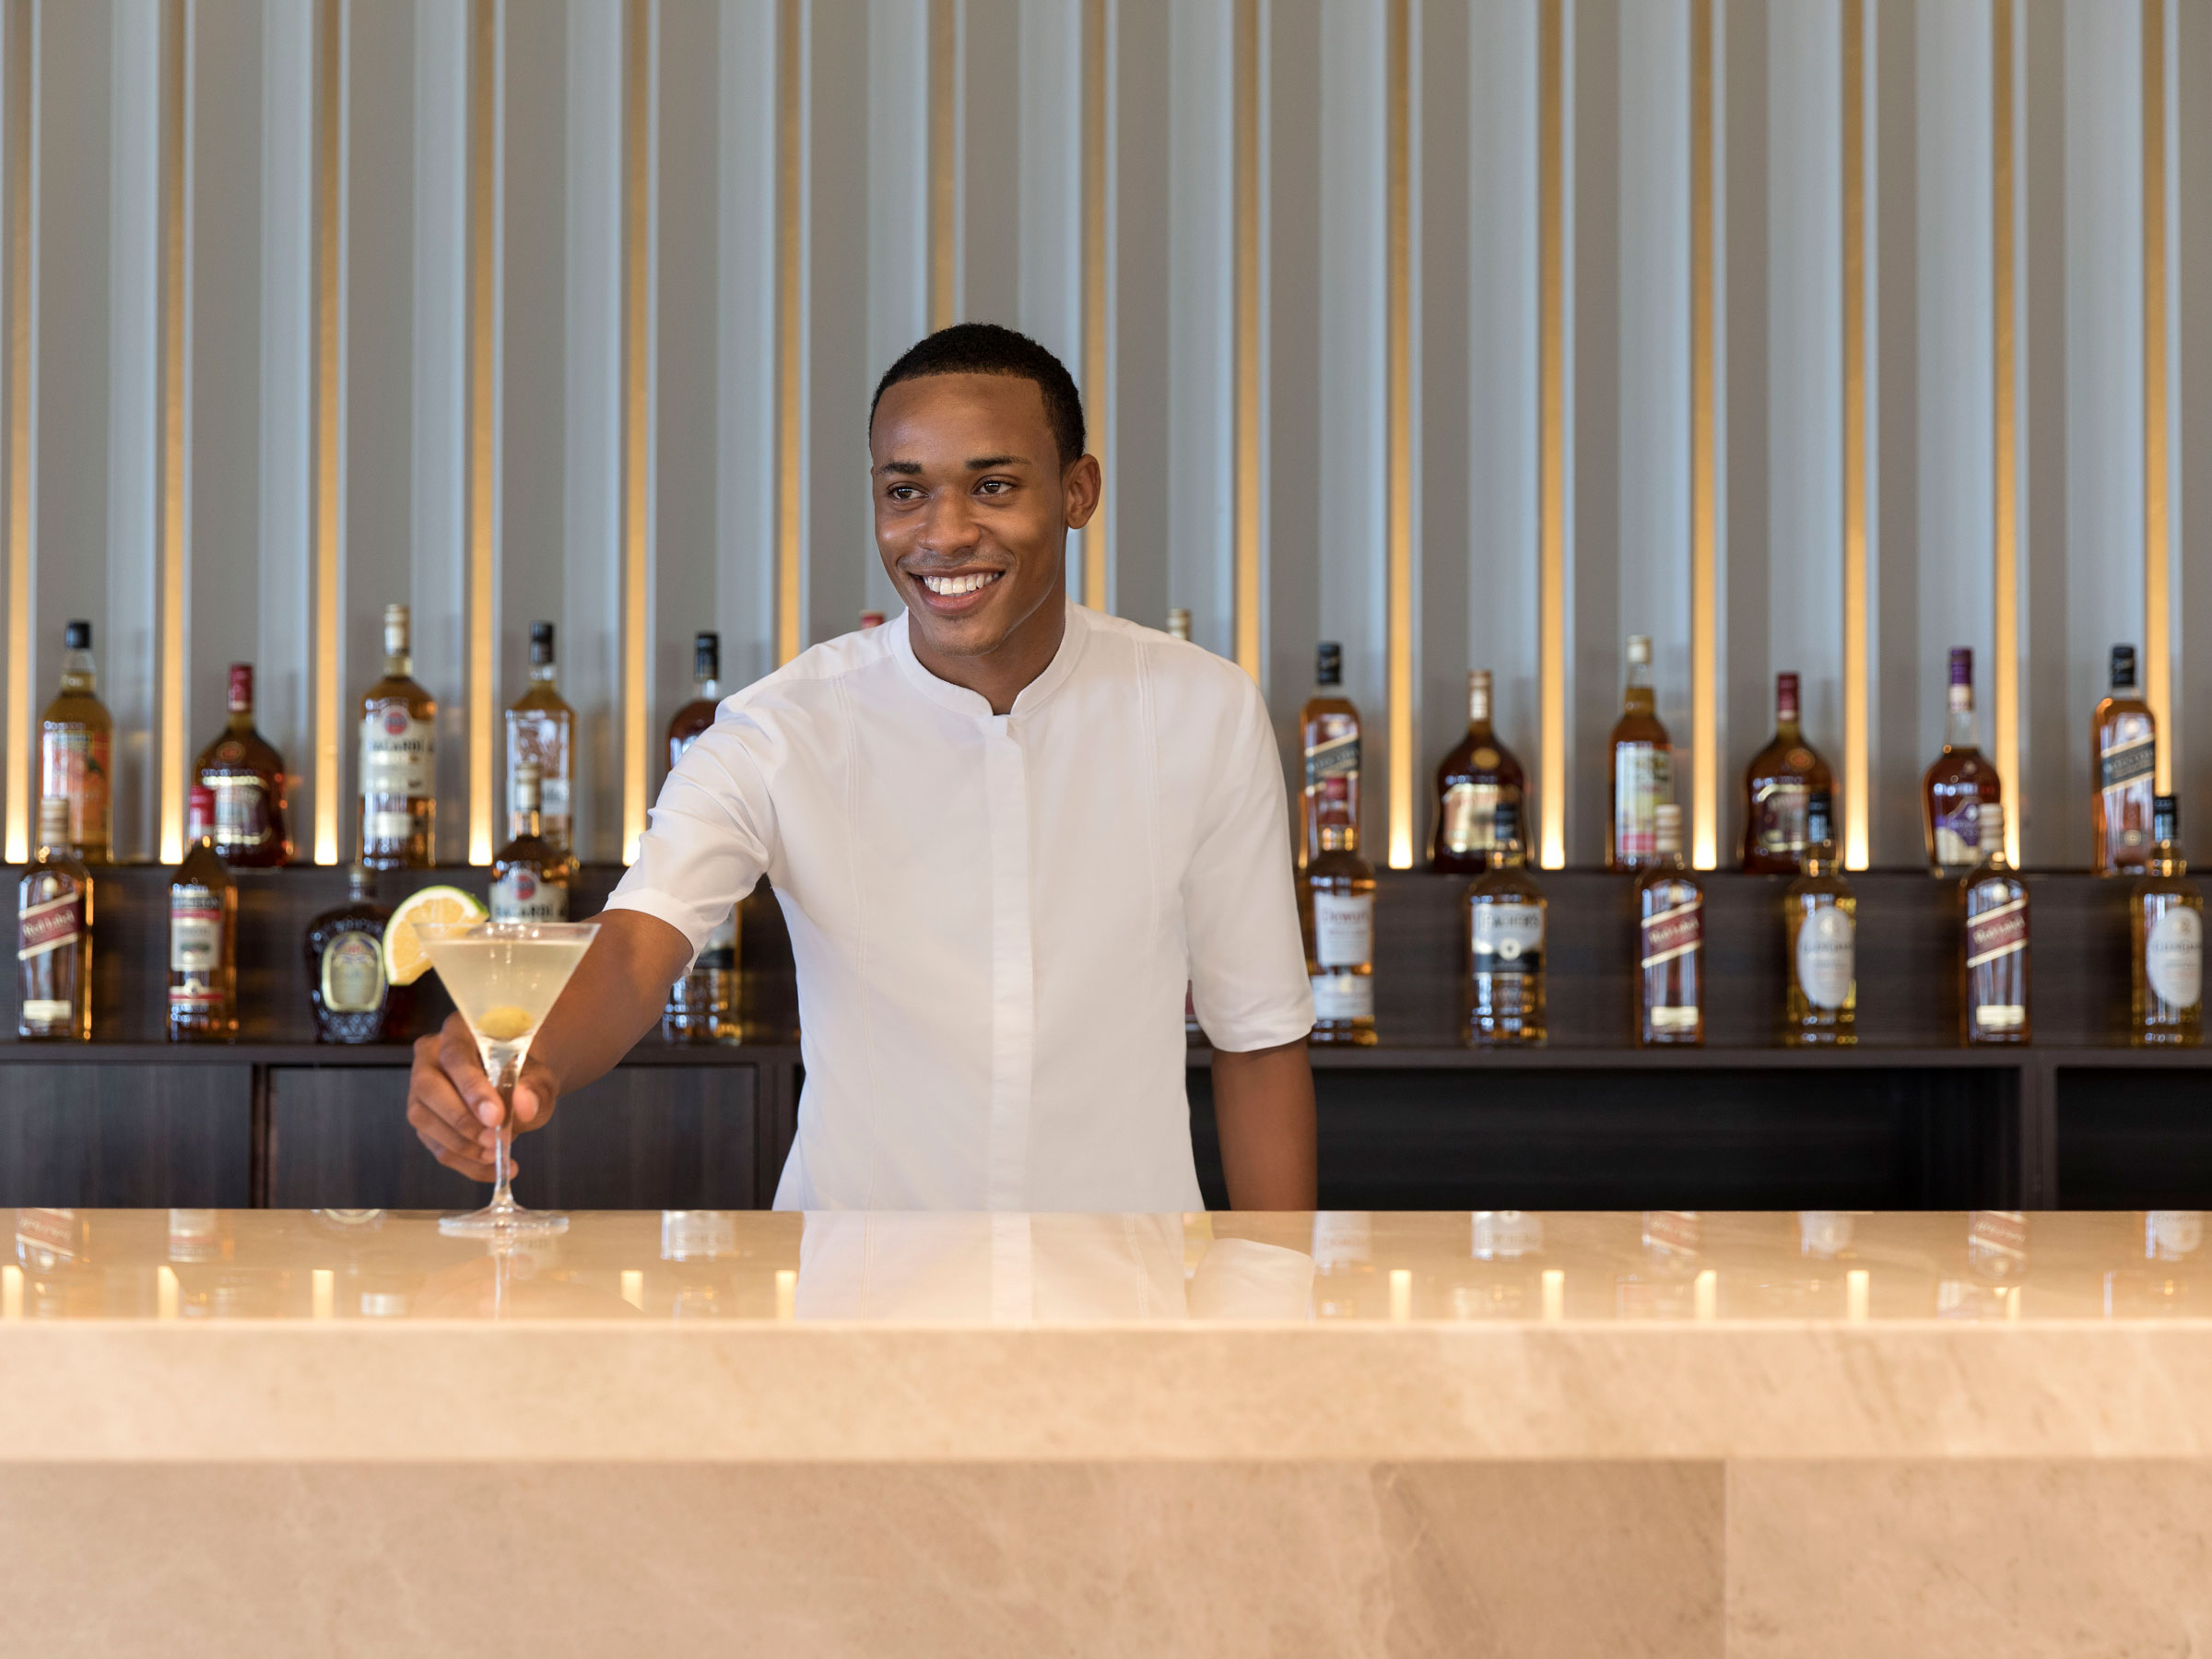 Expert Cocktail Service at Hotel Bars in Jamaica